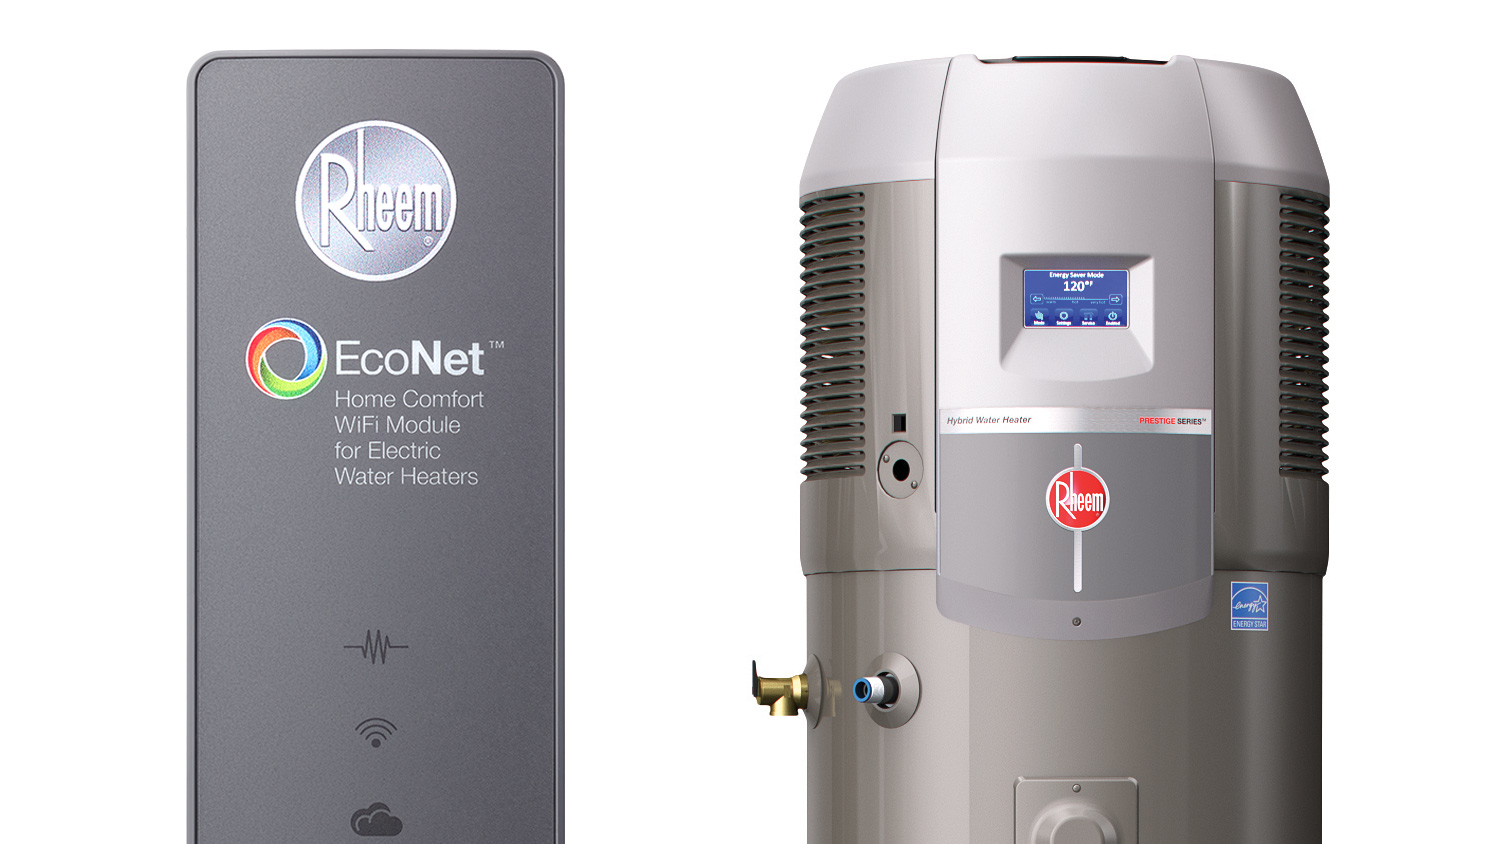 Rheem Hot Water Heaters >> First Look: Rheem Hybrid Heat Pump Water Heater with EcoNet - At Home in the Future